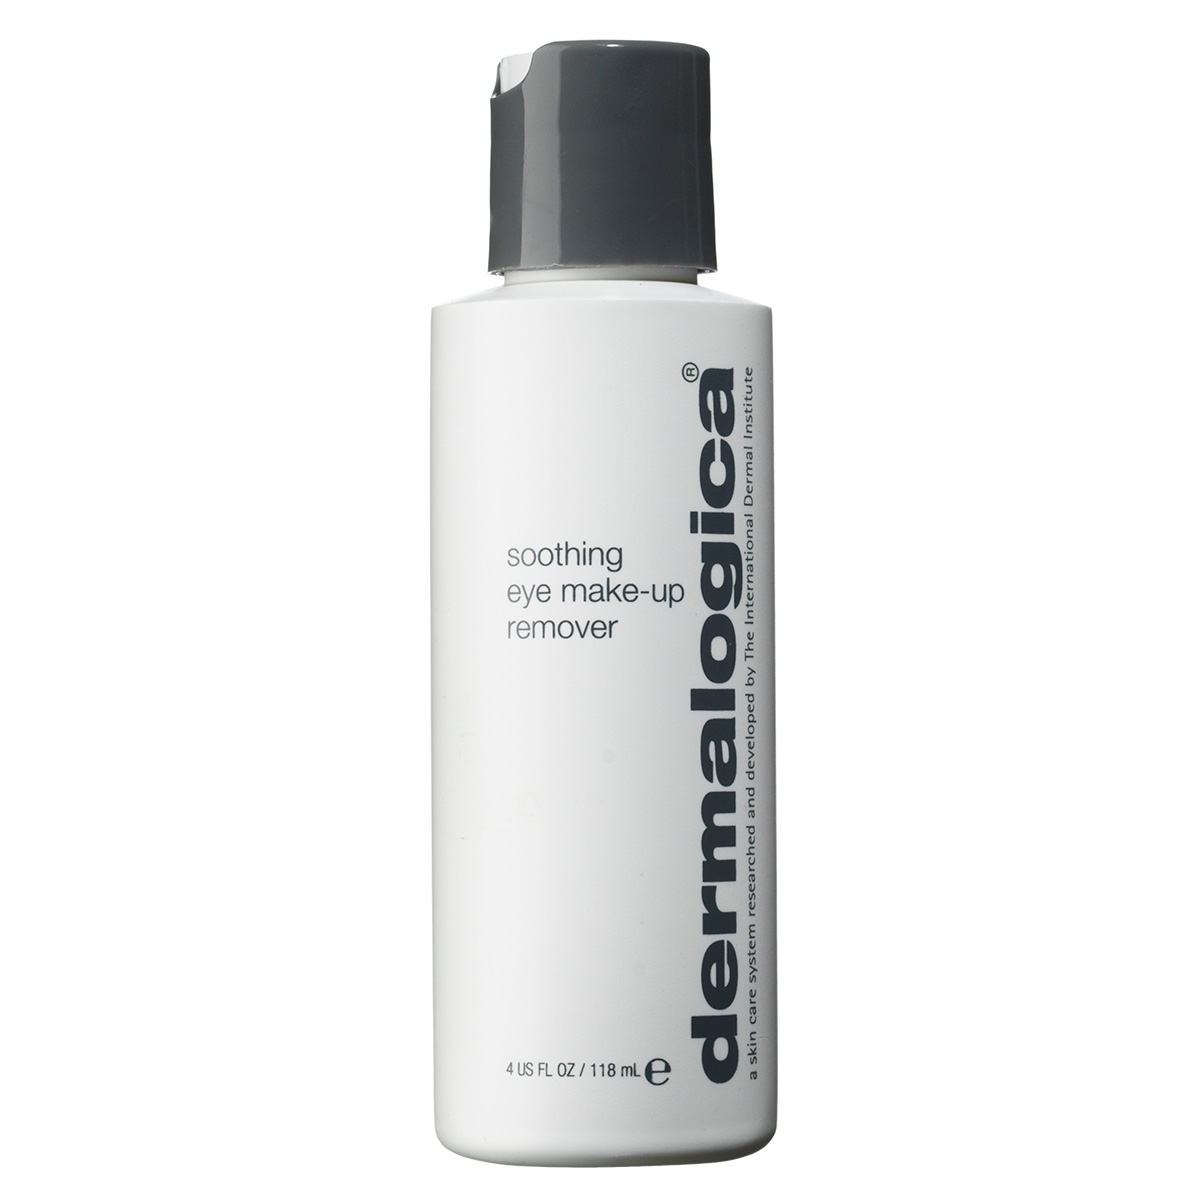 Dermalogica Soothing Eye Make-Up Remover - 118 ml Øjenmakeup-fjerner til alle hudtyper